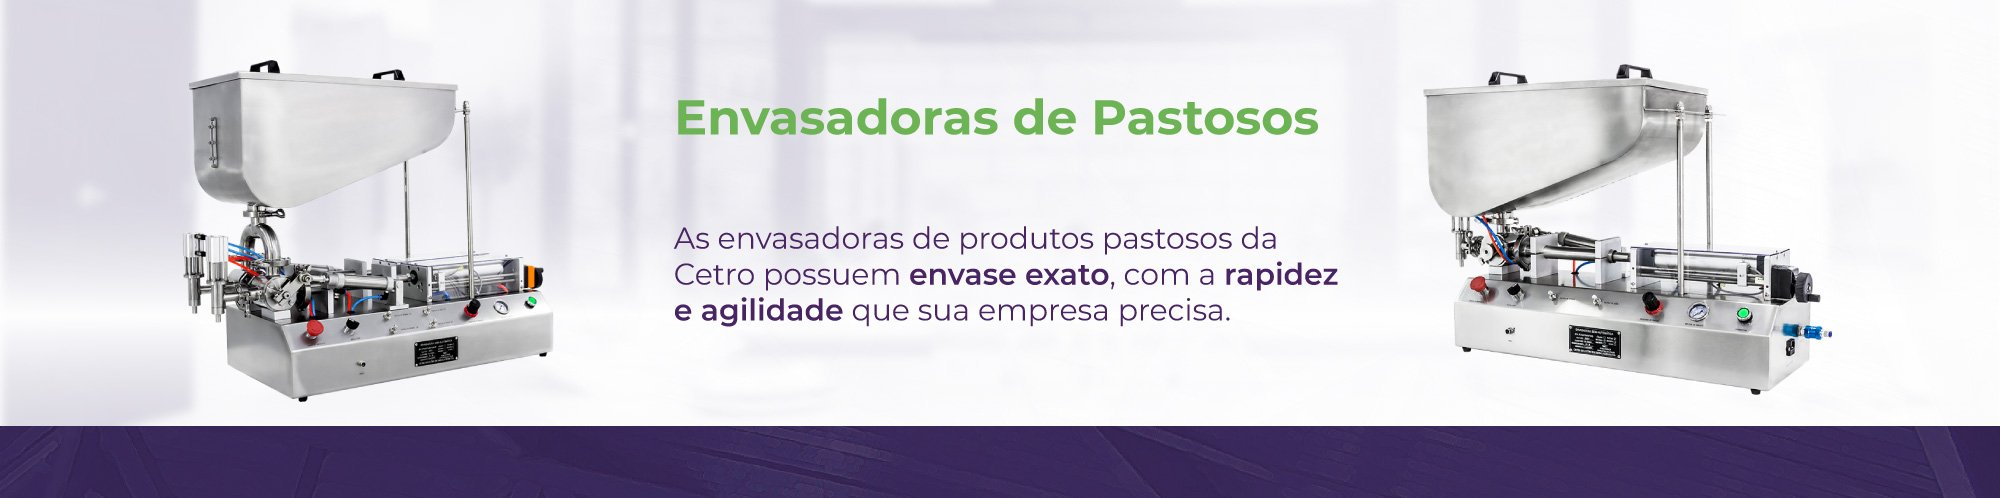 Categorias - Envasadoras de Pastosos